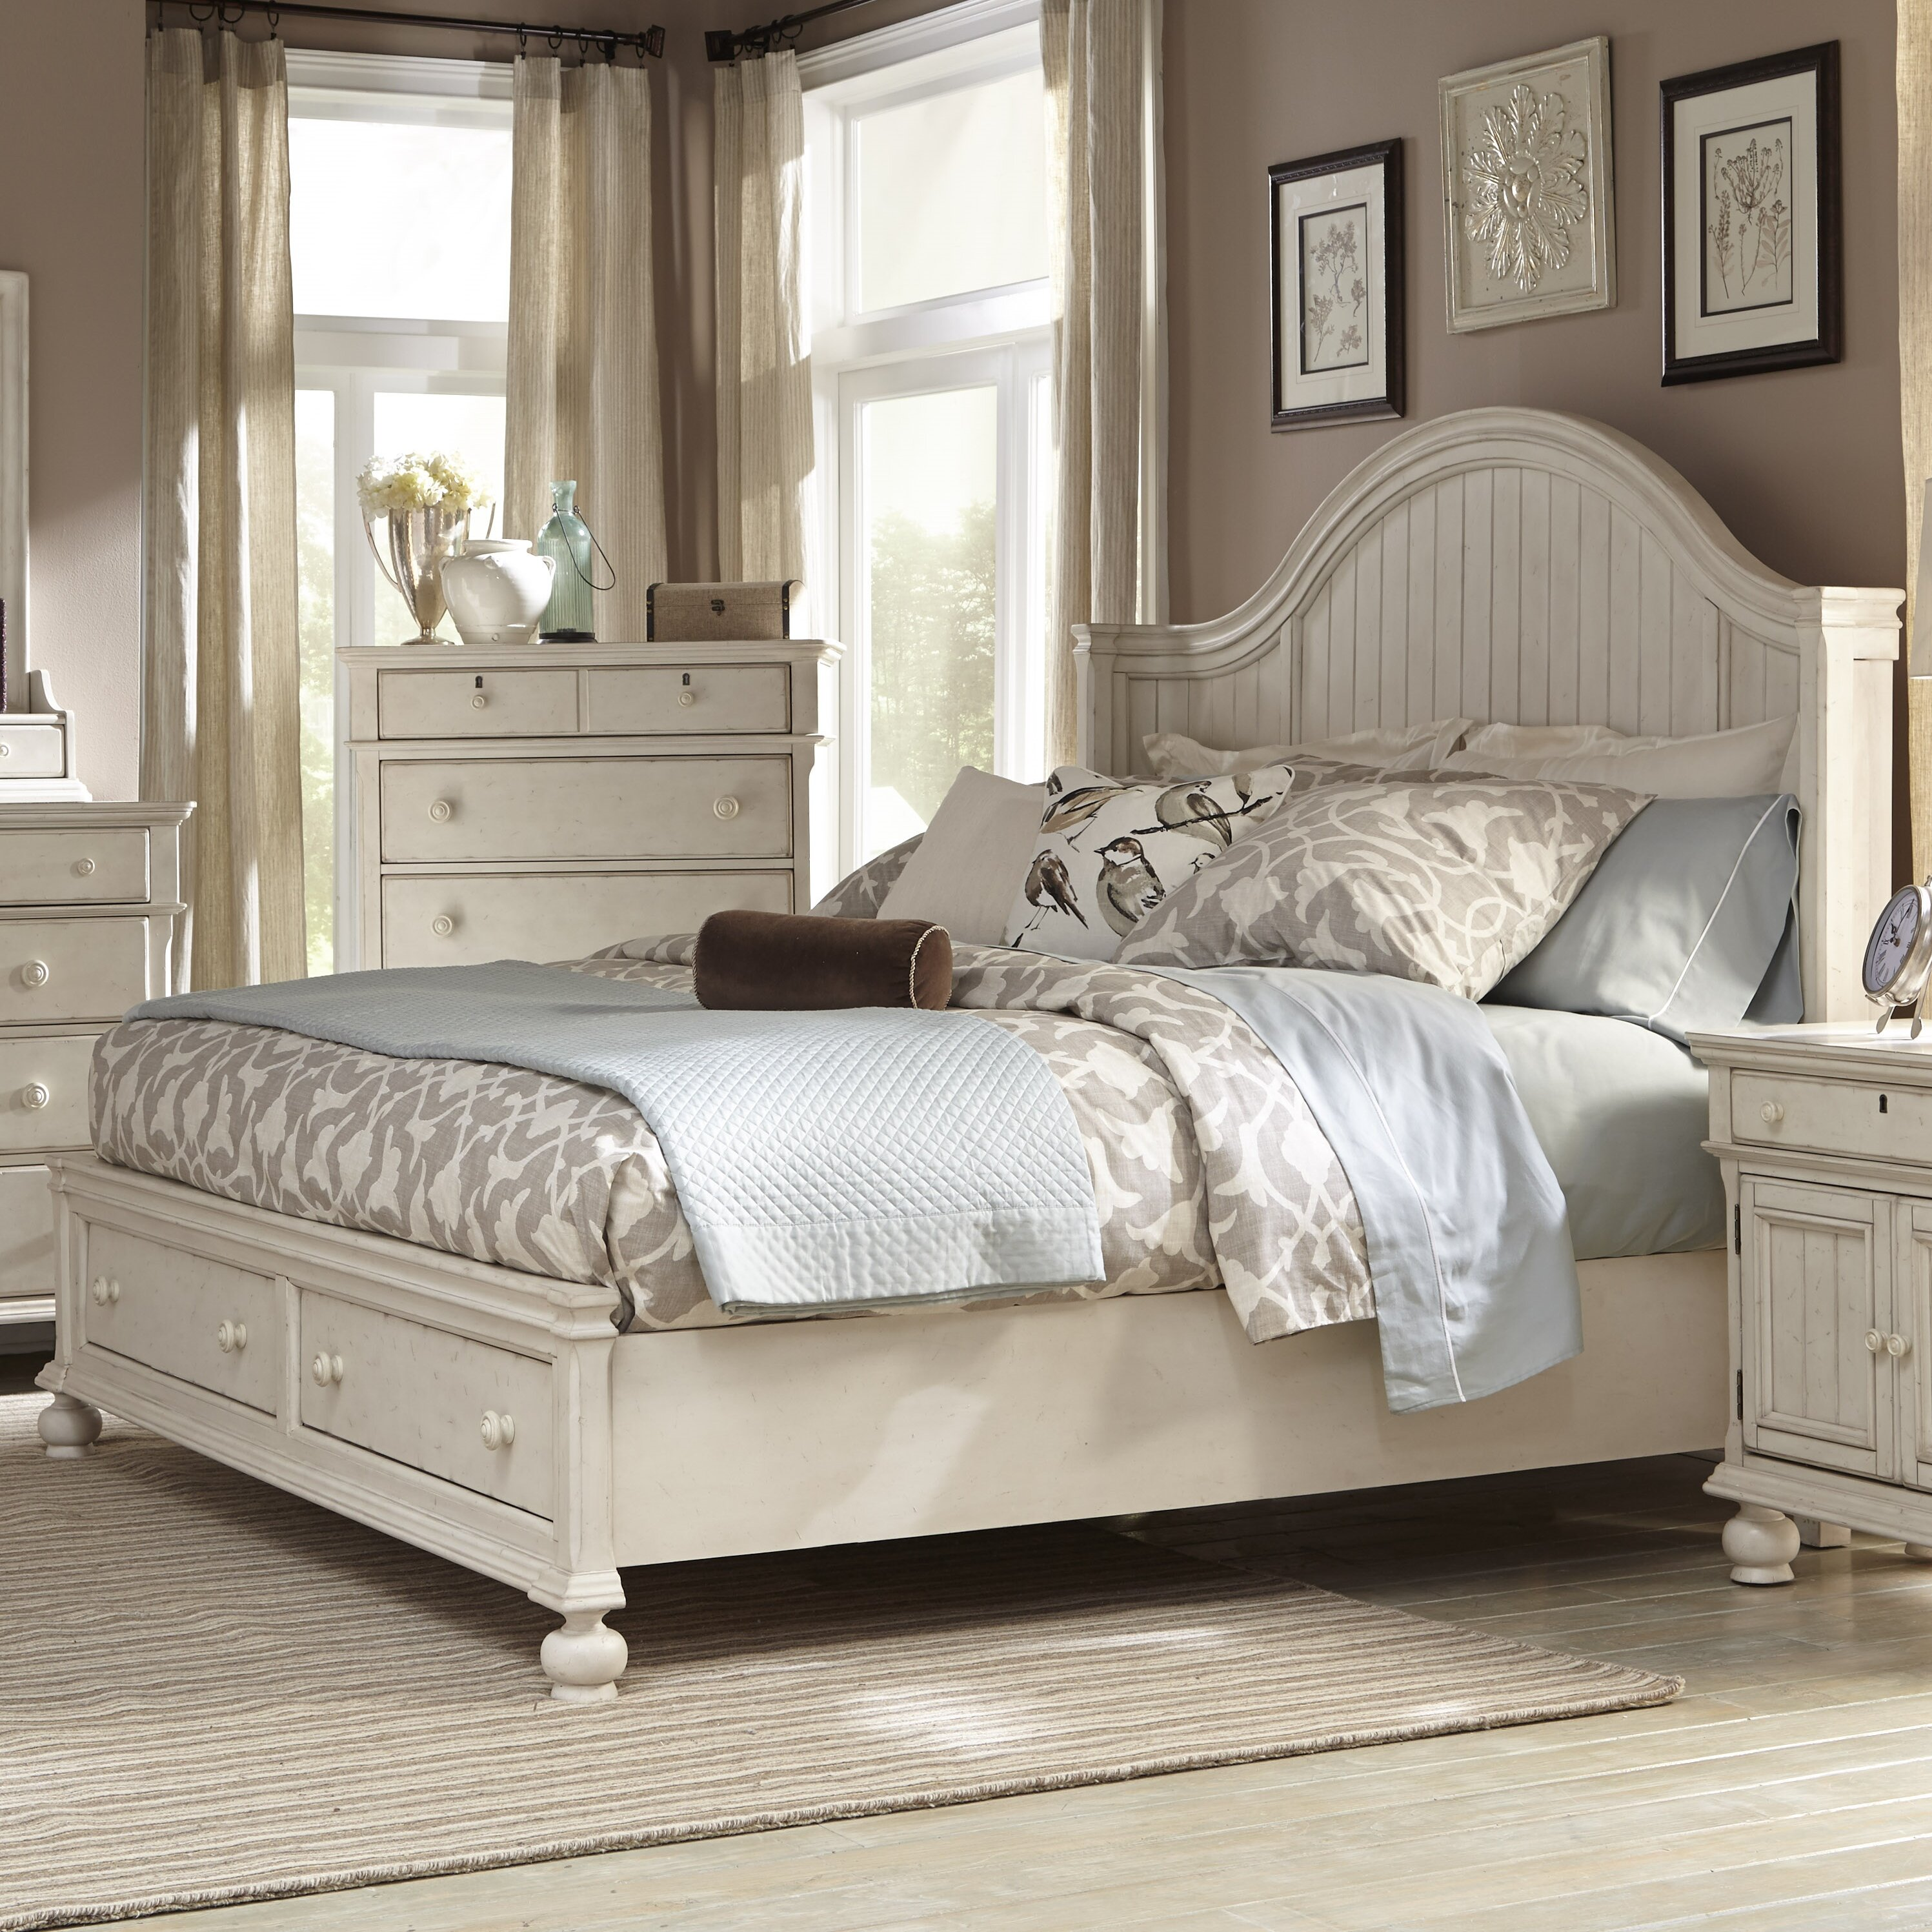 American woodcrafters newport panel bed reviews wayfair for American woodcrafters bedroom furniture